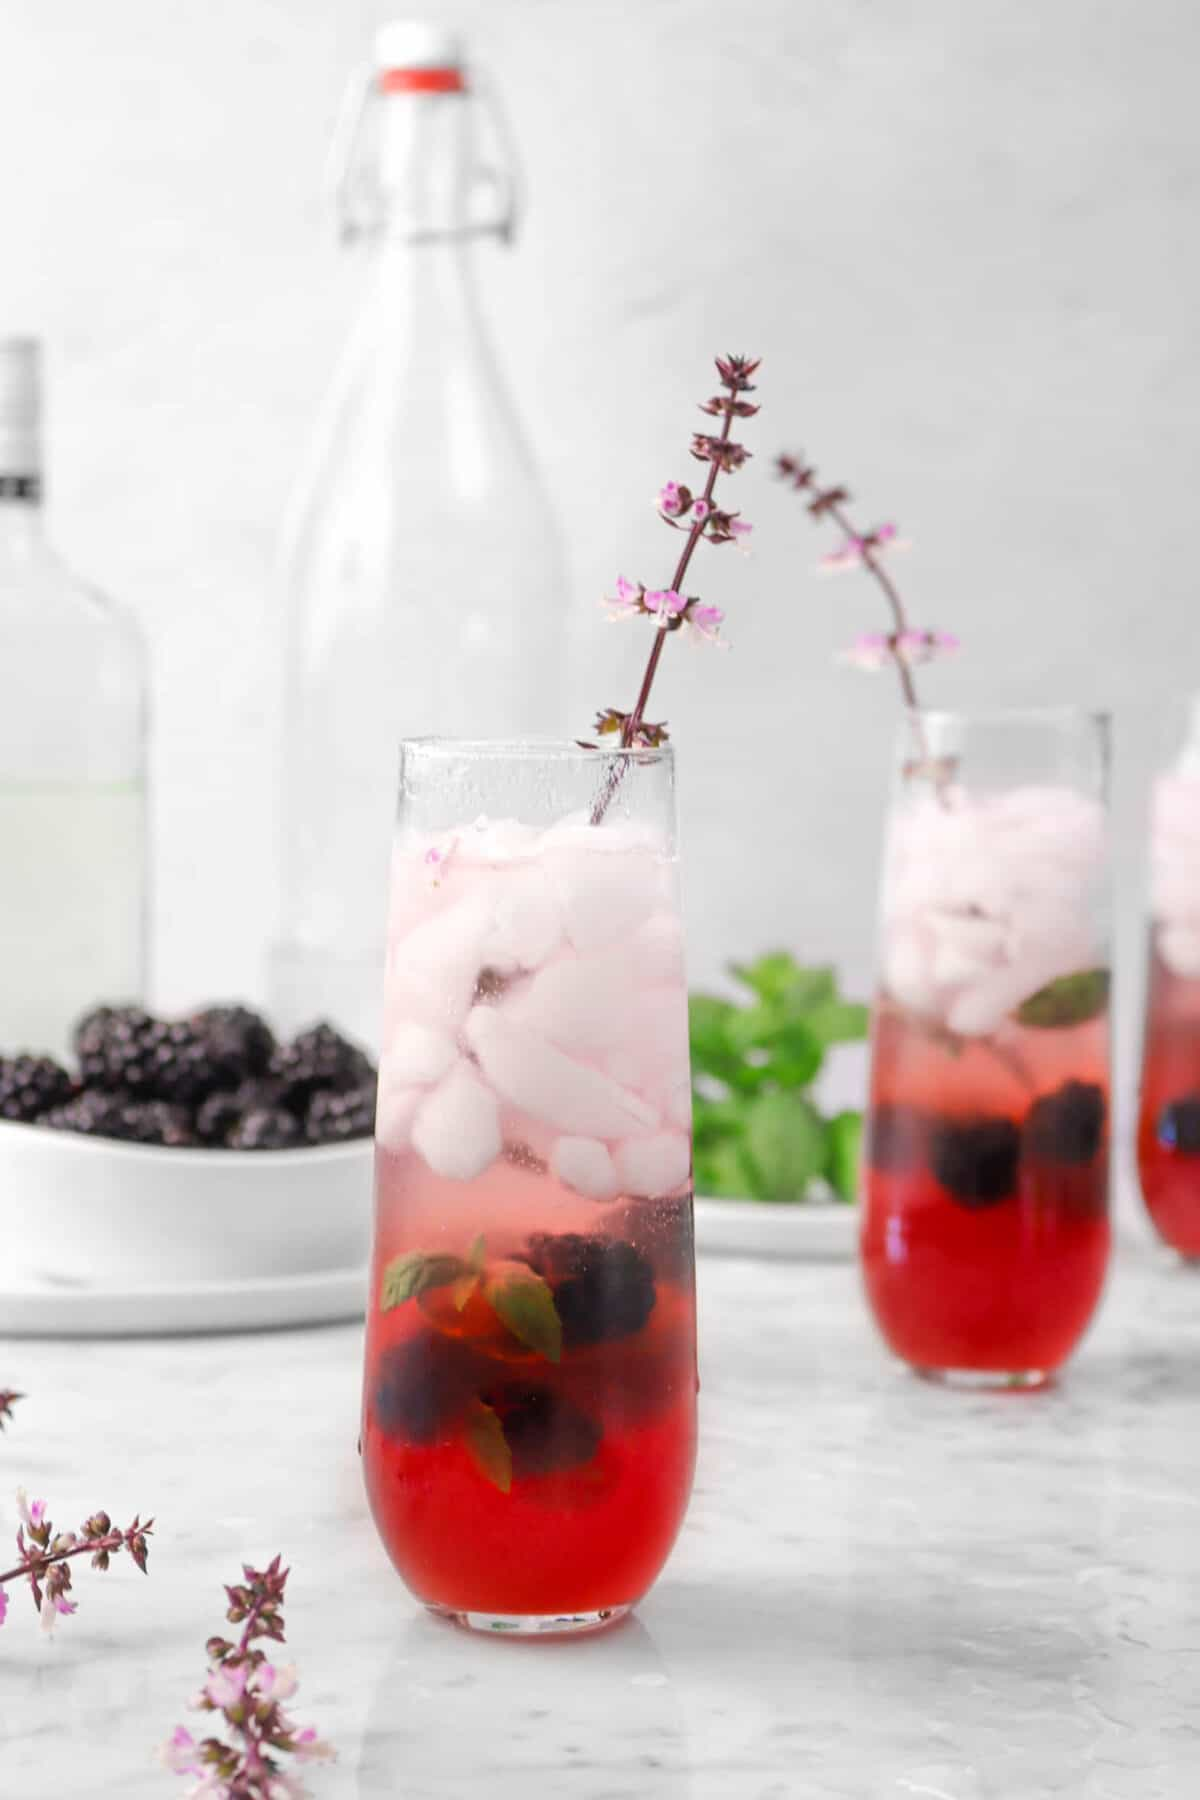 three mojitos with purple flowers, blackberries, two jars, and mint